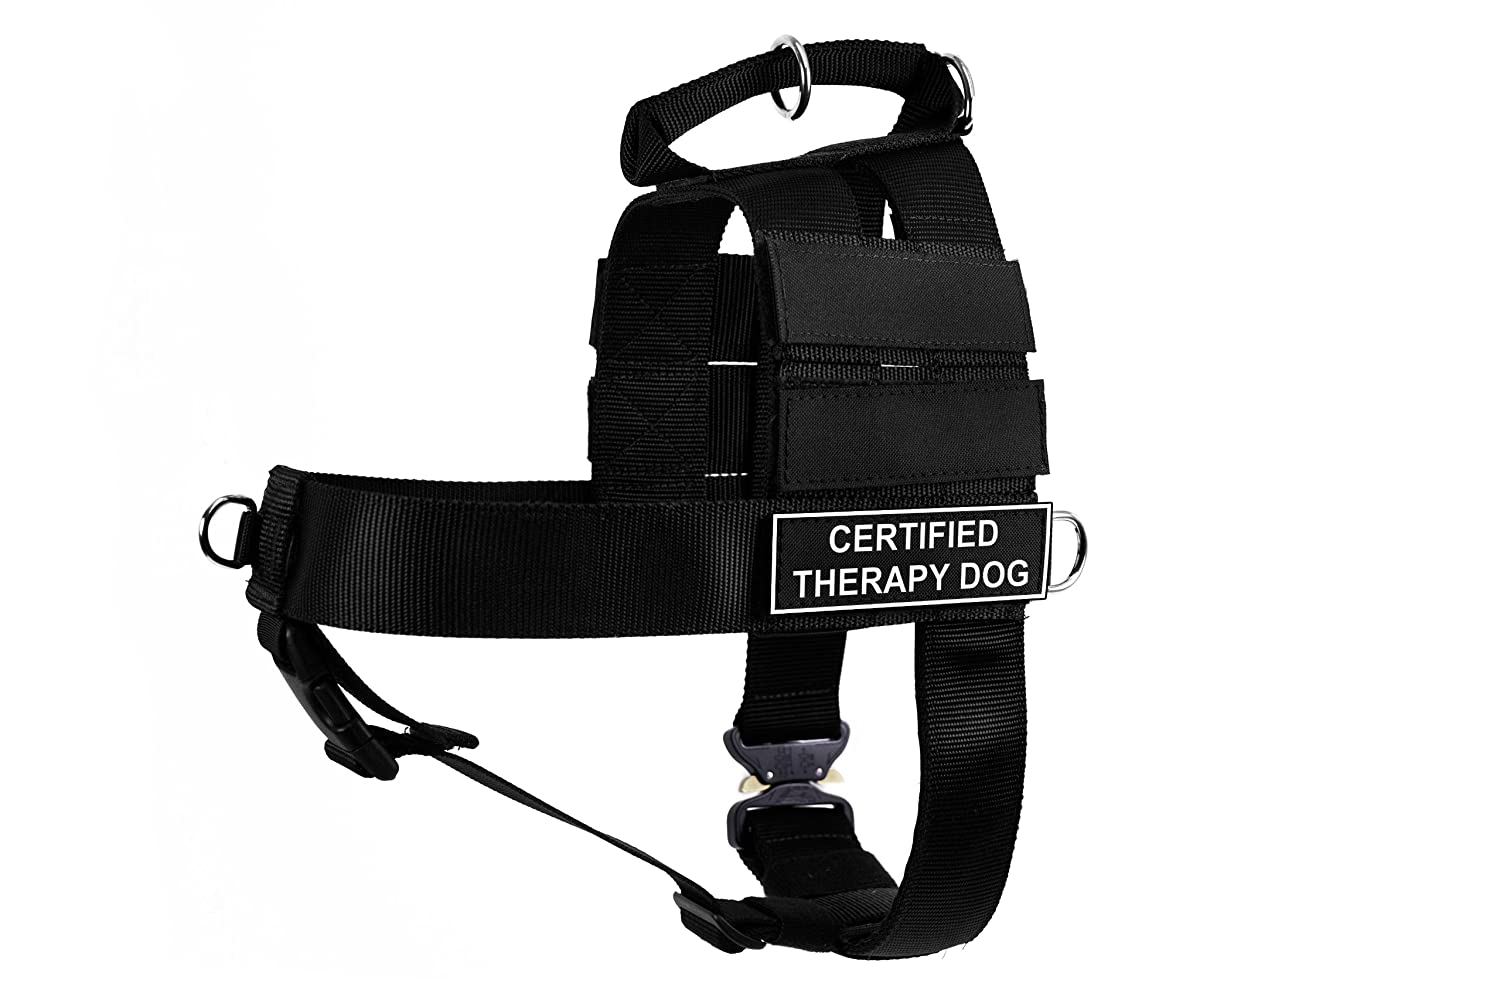 Dean & Tyler DT Cobra Certified Therapy Dog No Pull Harness, Small, Black